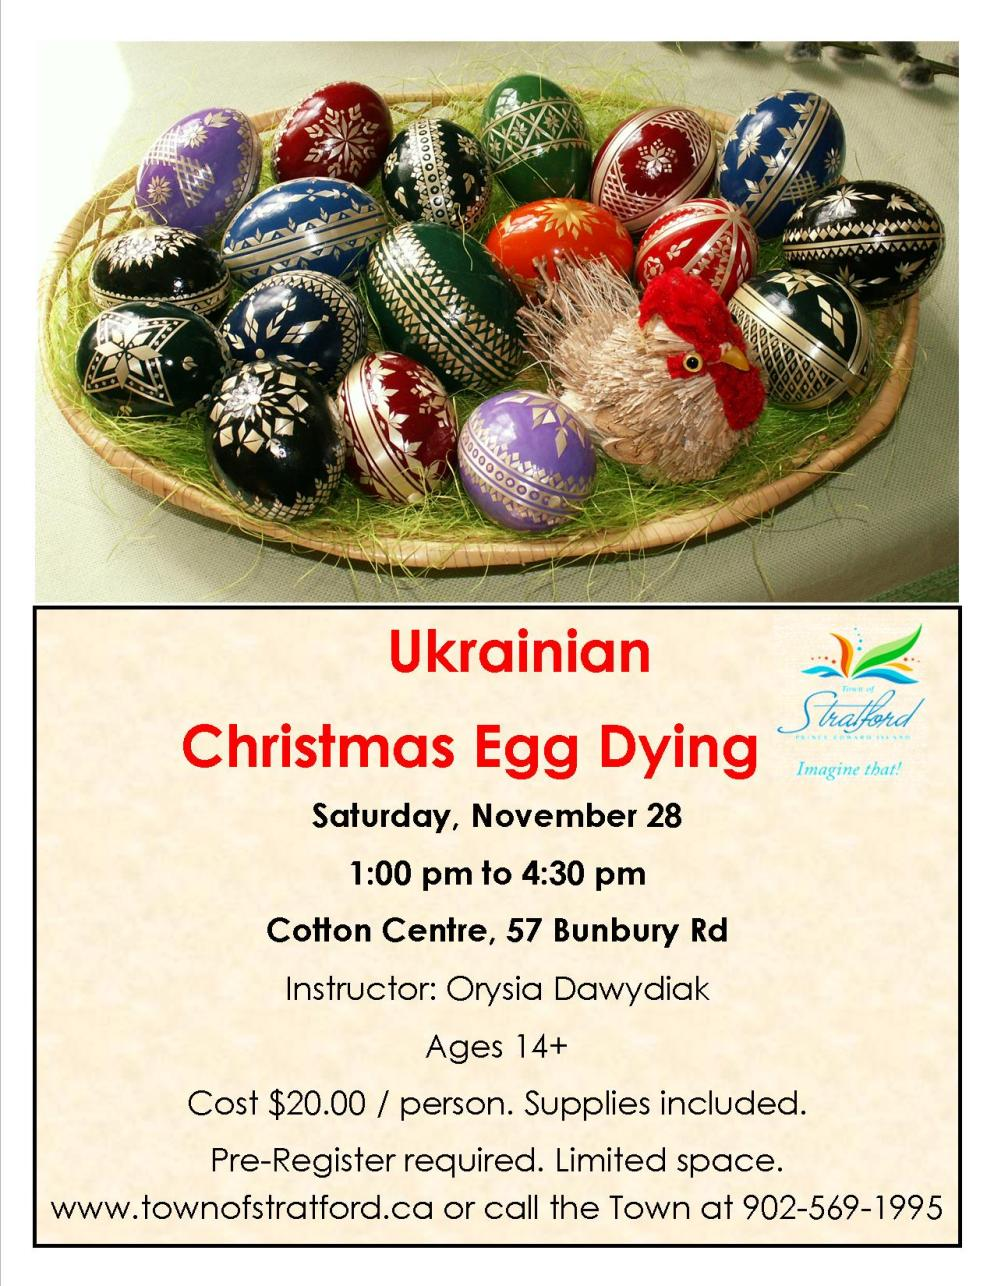 Christmas Egg Dying Nov 28, 2015